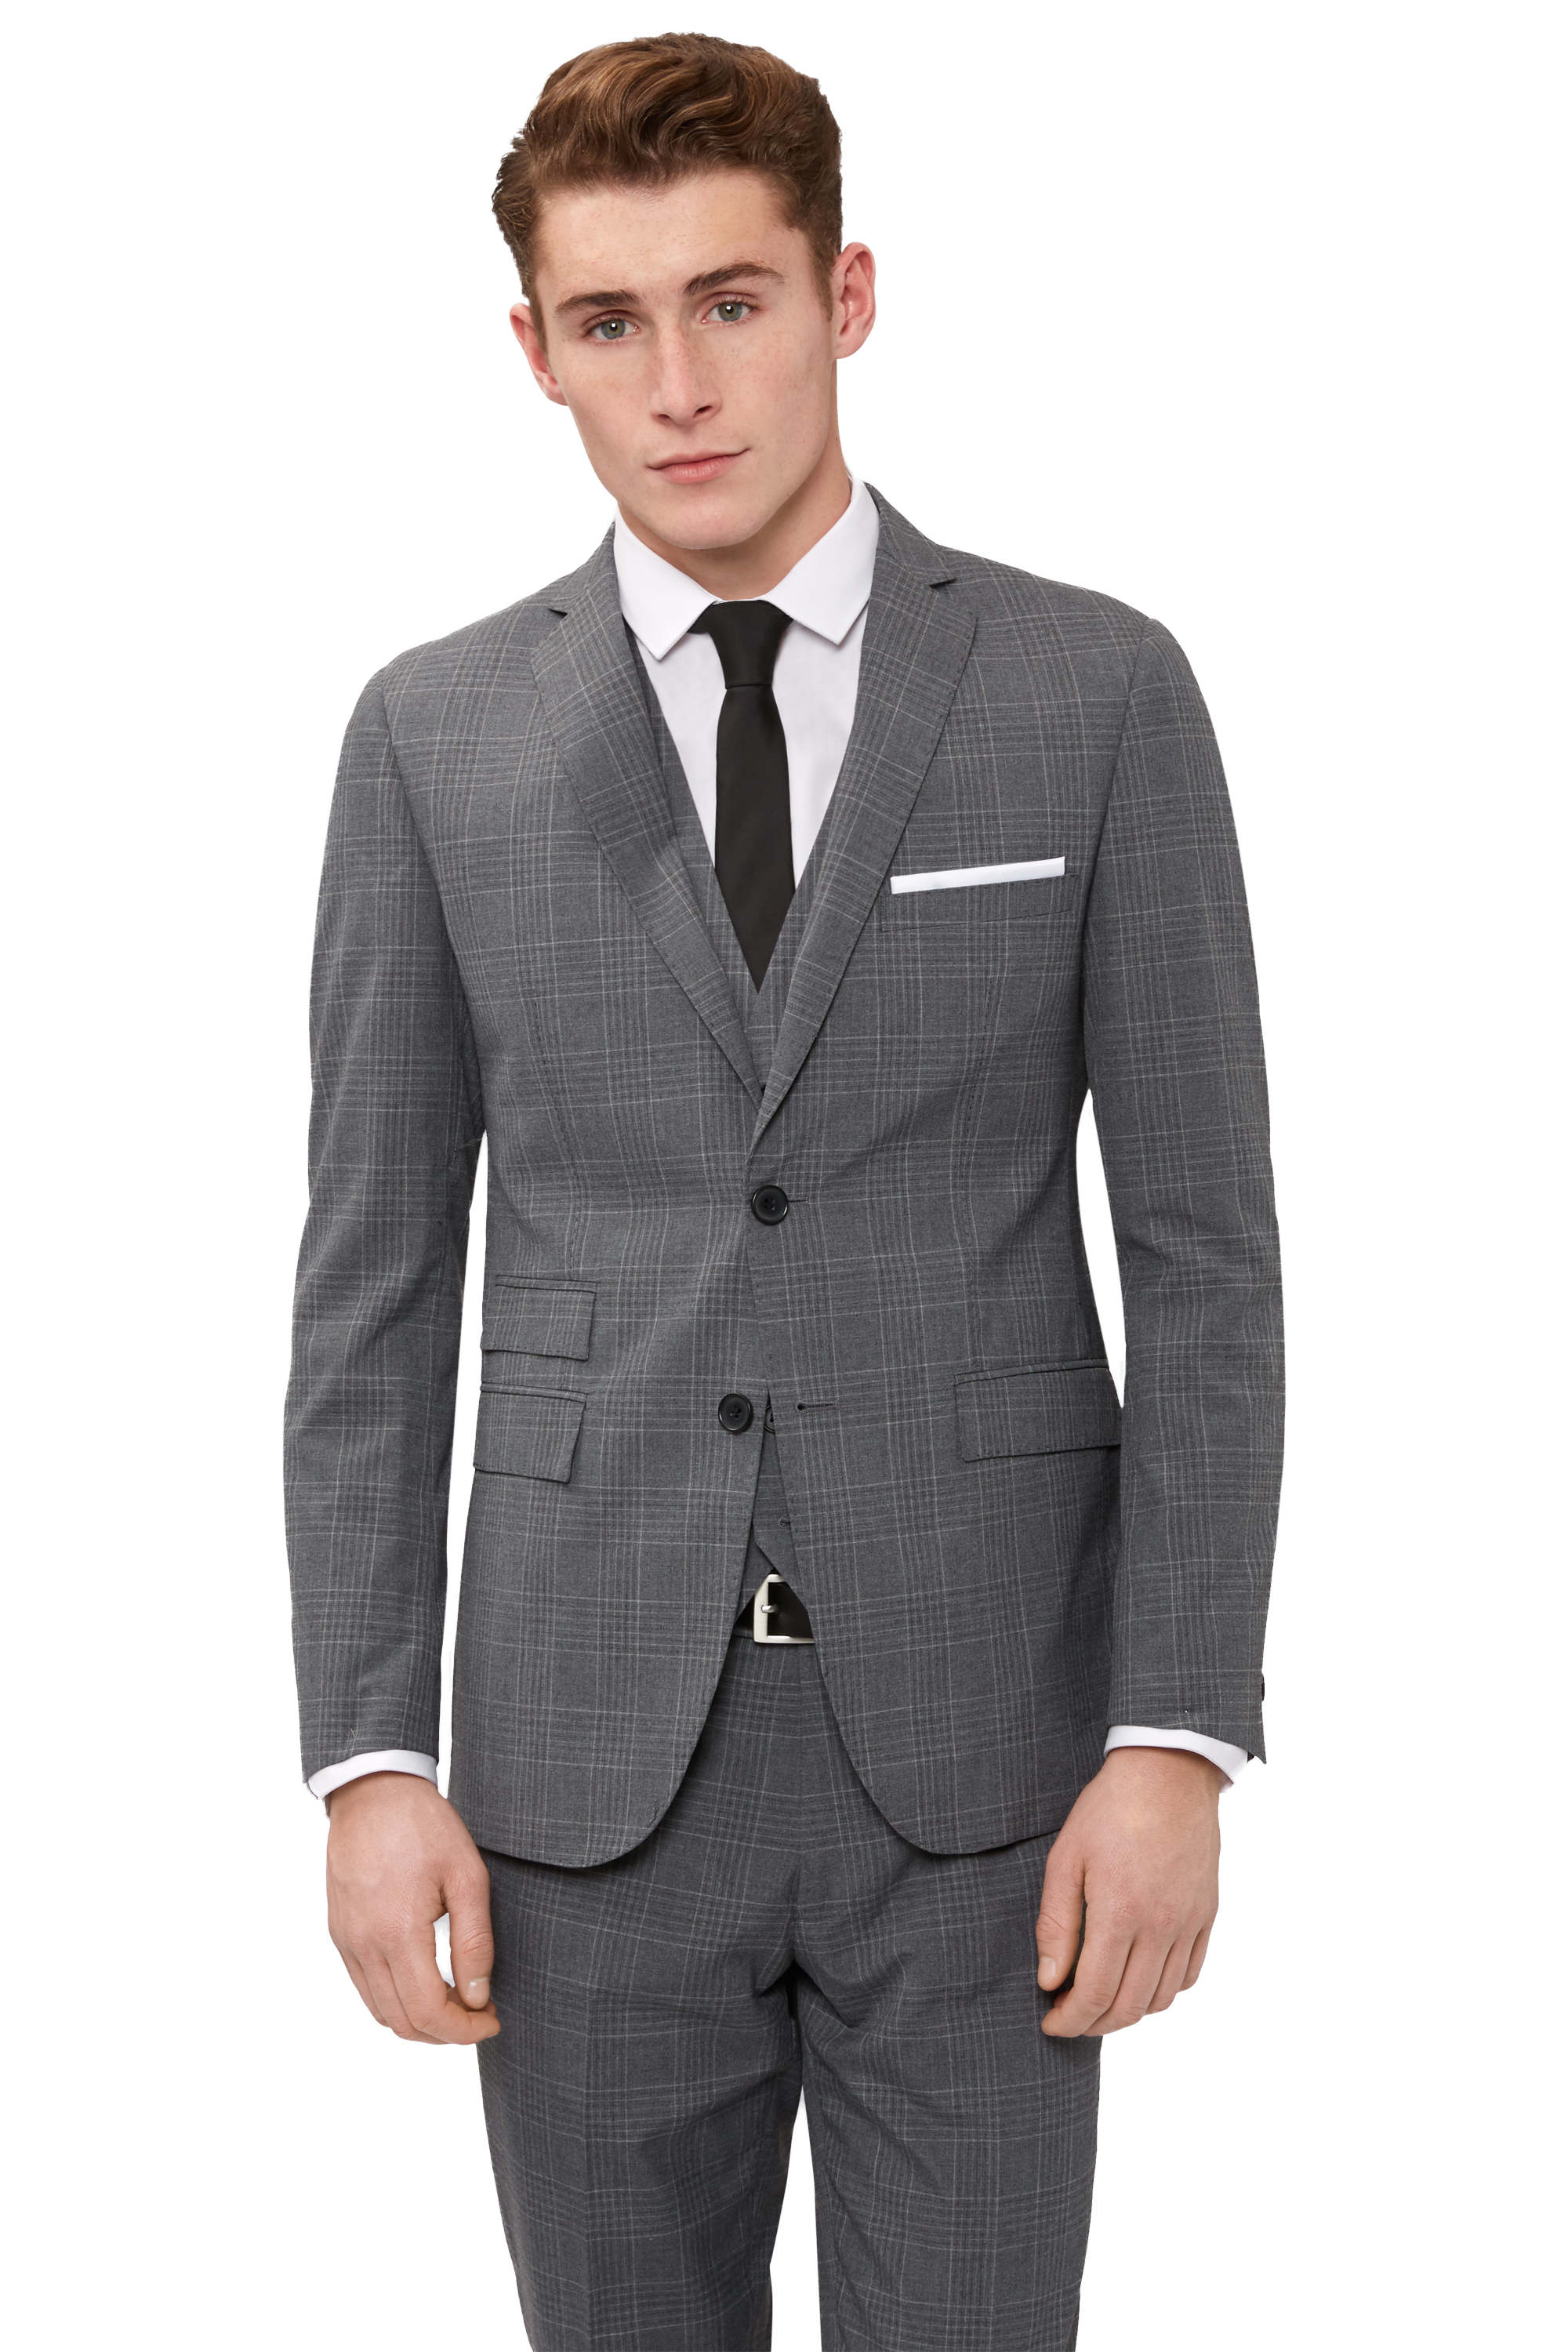 Mens Modern Fit 2-Button Grey Suit Jacket. Famous Maker isn't a brand, think of it as a deal so fabulous we can't even reveal the actual label. It's just one of the many ways we work hard to bring you top designers and brands at amazing values.